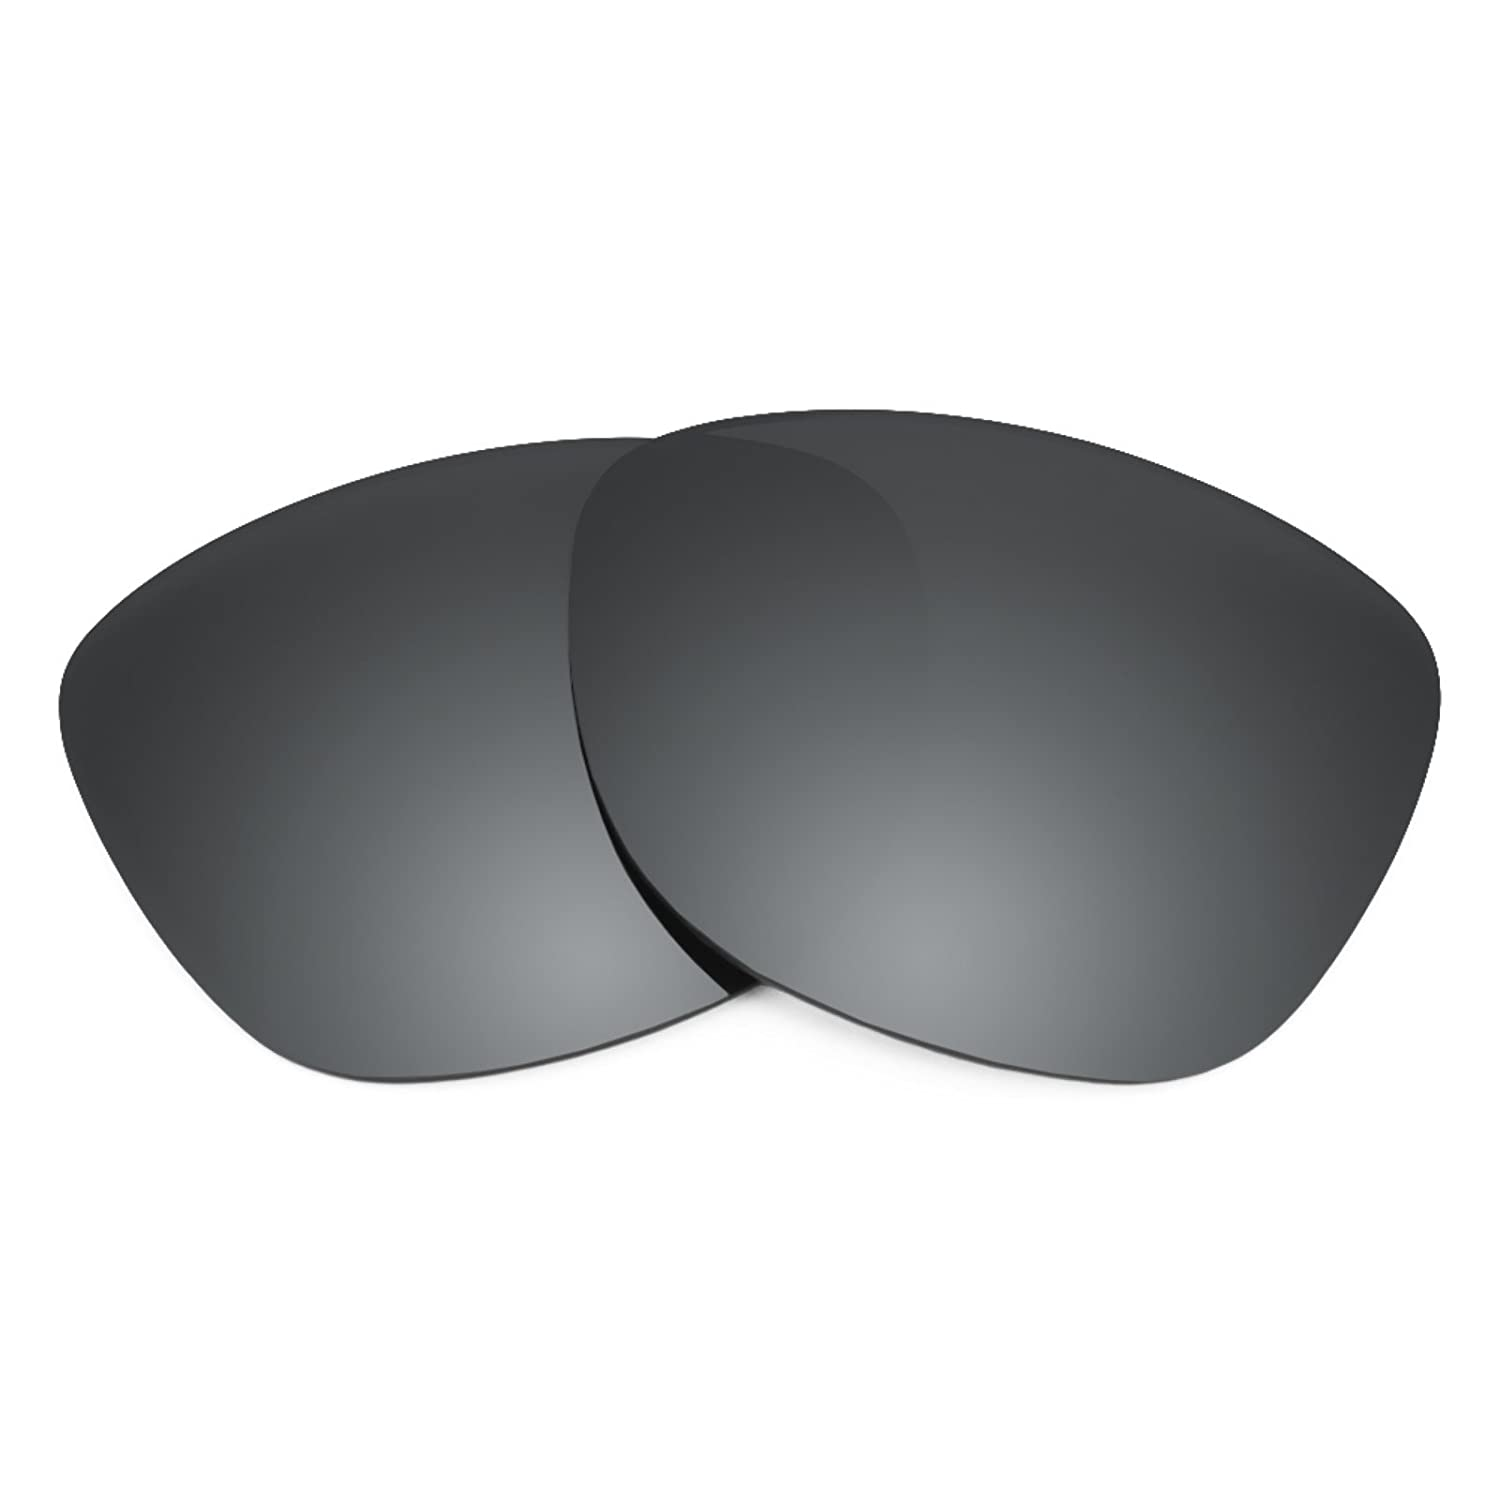 af25422f881 Revant Polarized Replacement Lenses for Ray-Ban RB4181 Elite Black Chrome  MirrorShield®  Amazon.co.uk  Clothing